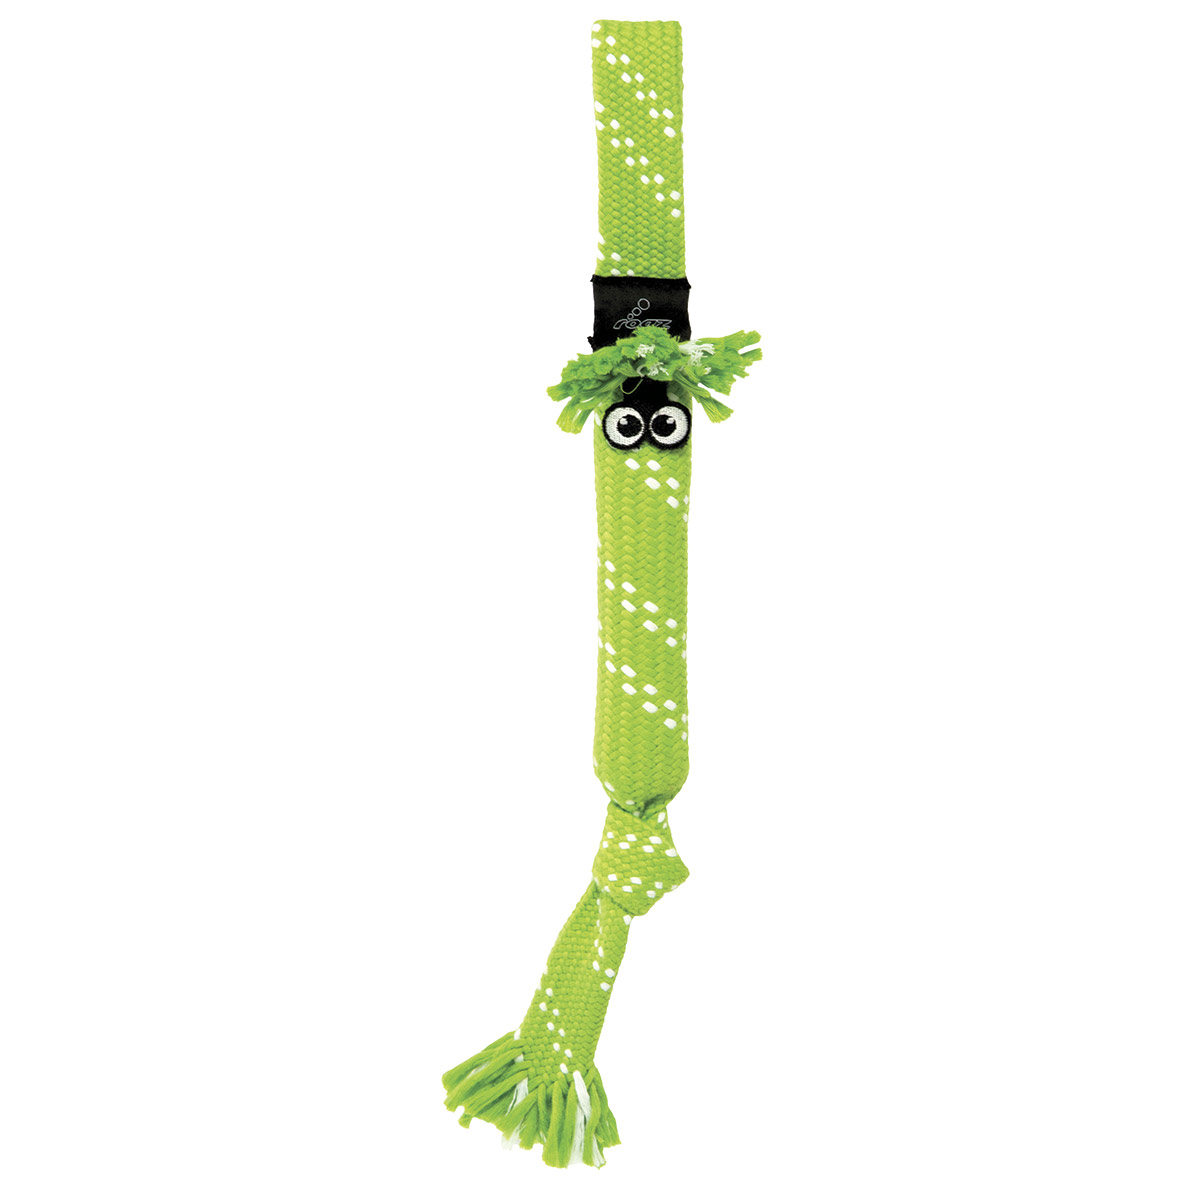 Green ROGZ Scrubz Large Tug Toy for Dogs